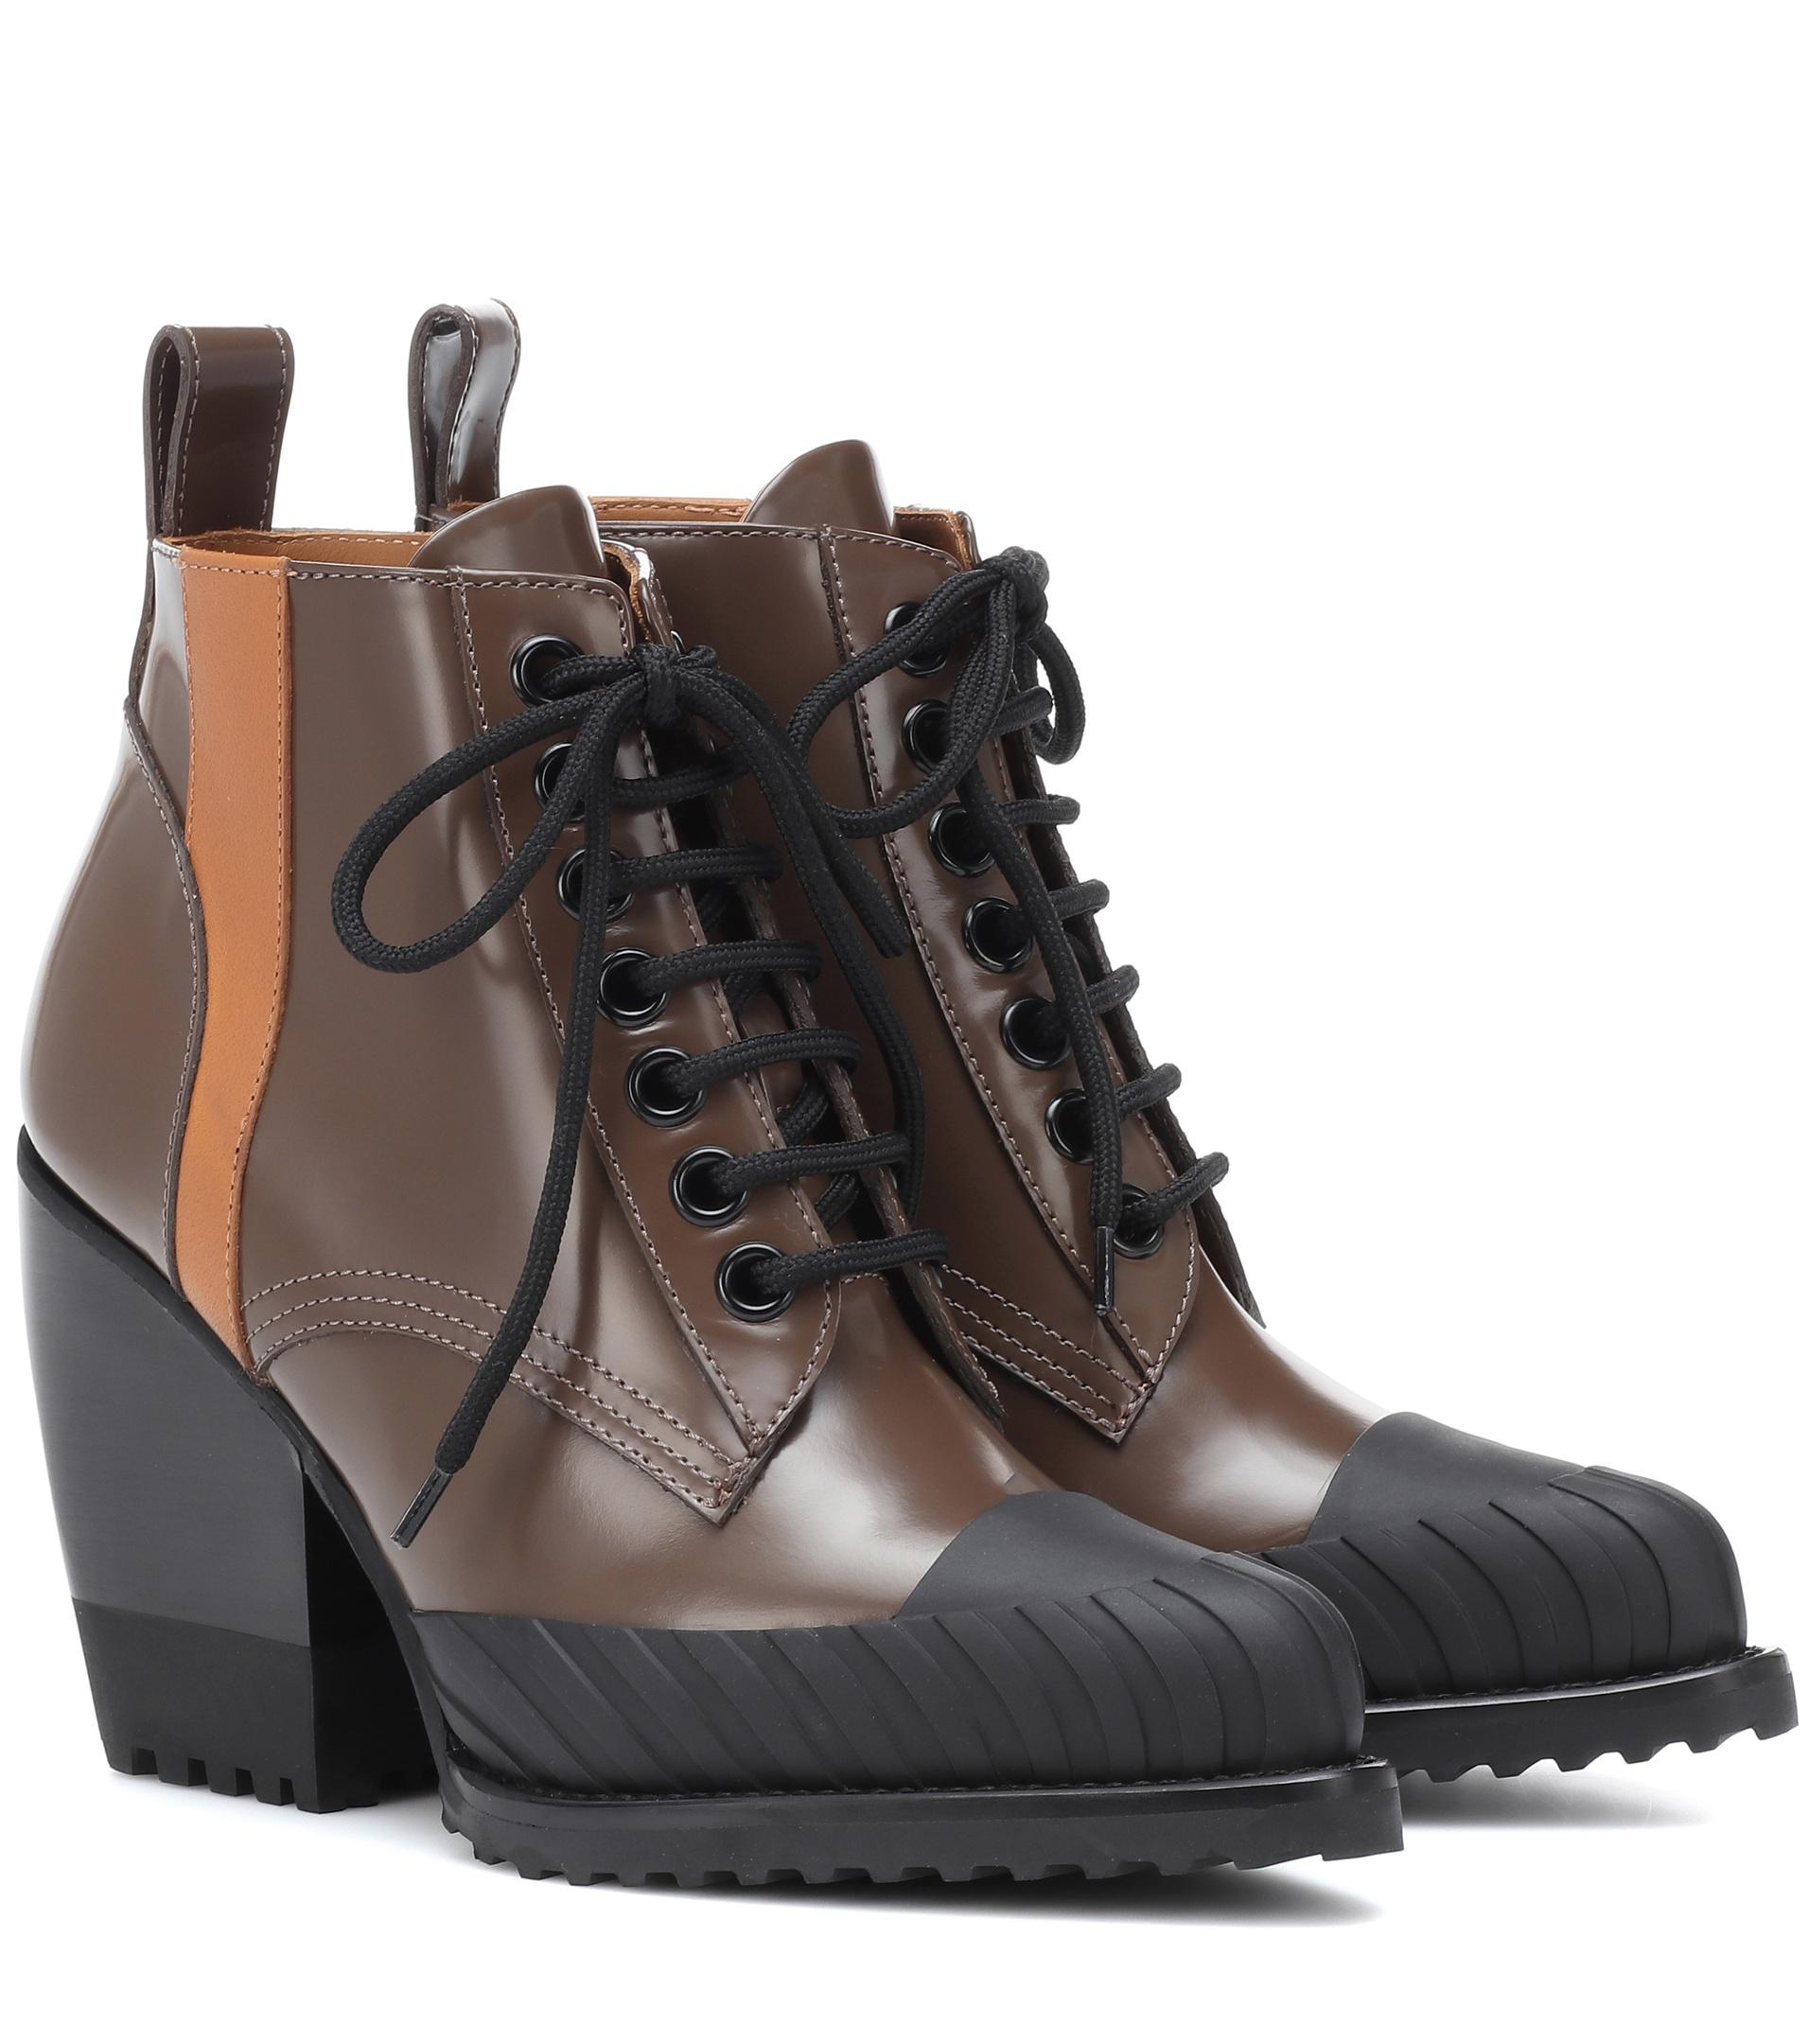 Chlo 233 Rylee Leather Lace Up Boots In Brown Lyst